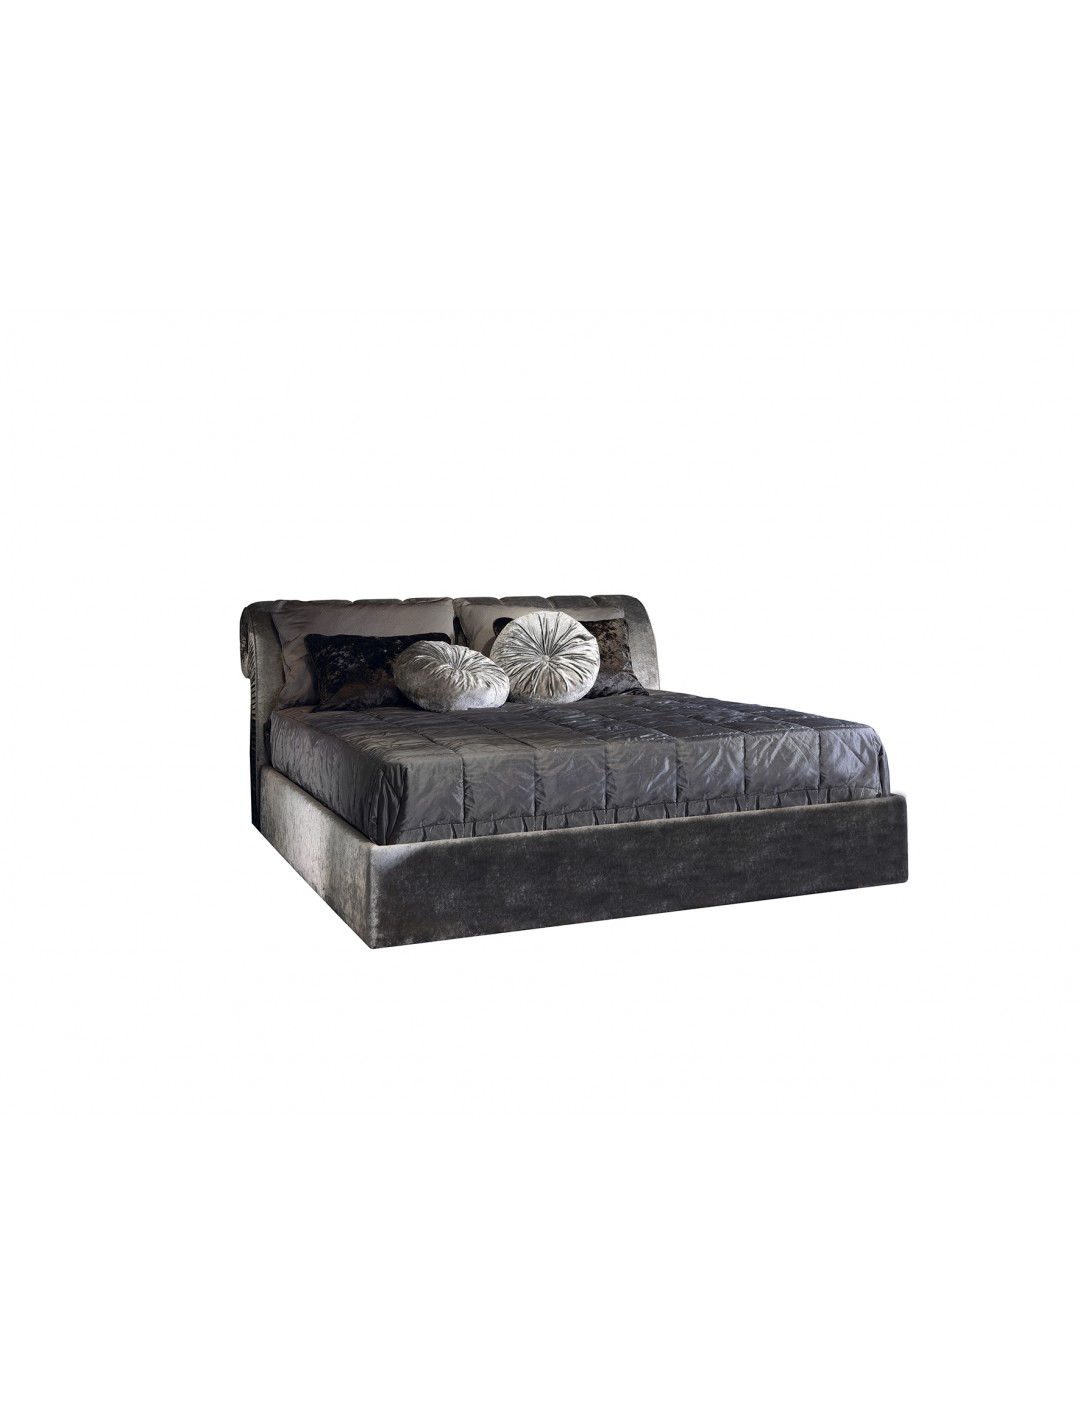 ALBA BED WITH UPHOLSTERED BASE (FOR 160X200 CM MATTRESS)